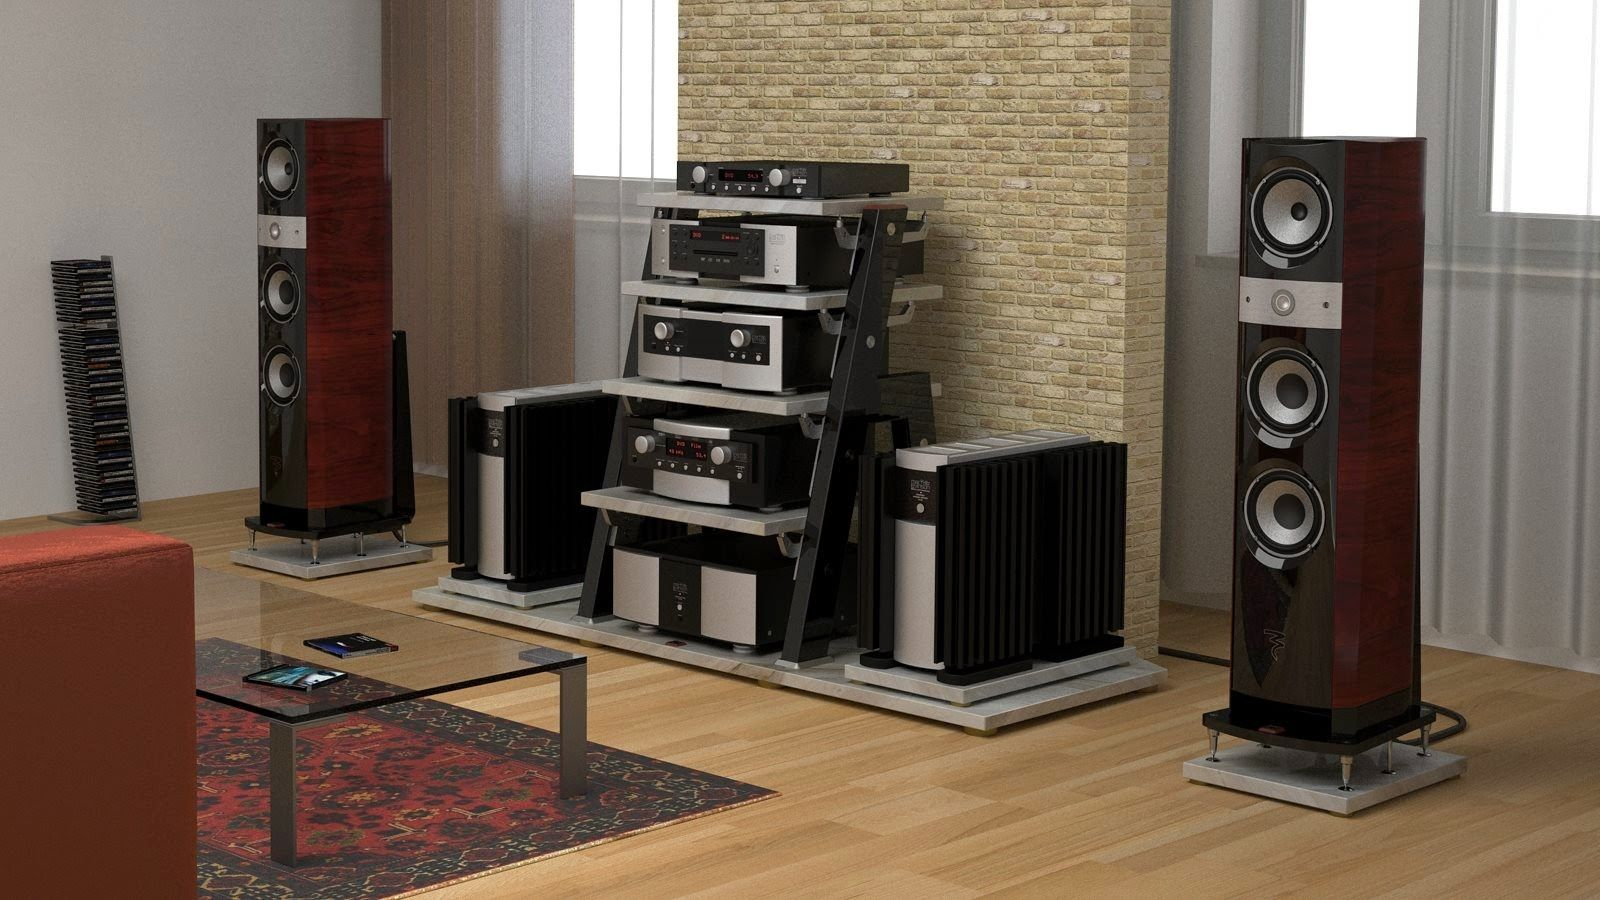 Mono and Stereo High-End Audio JTL Audio STV1, STV2 and STV3 high-end audio rack models audiophile